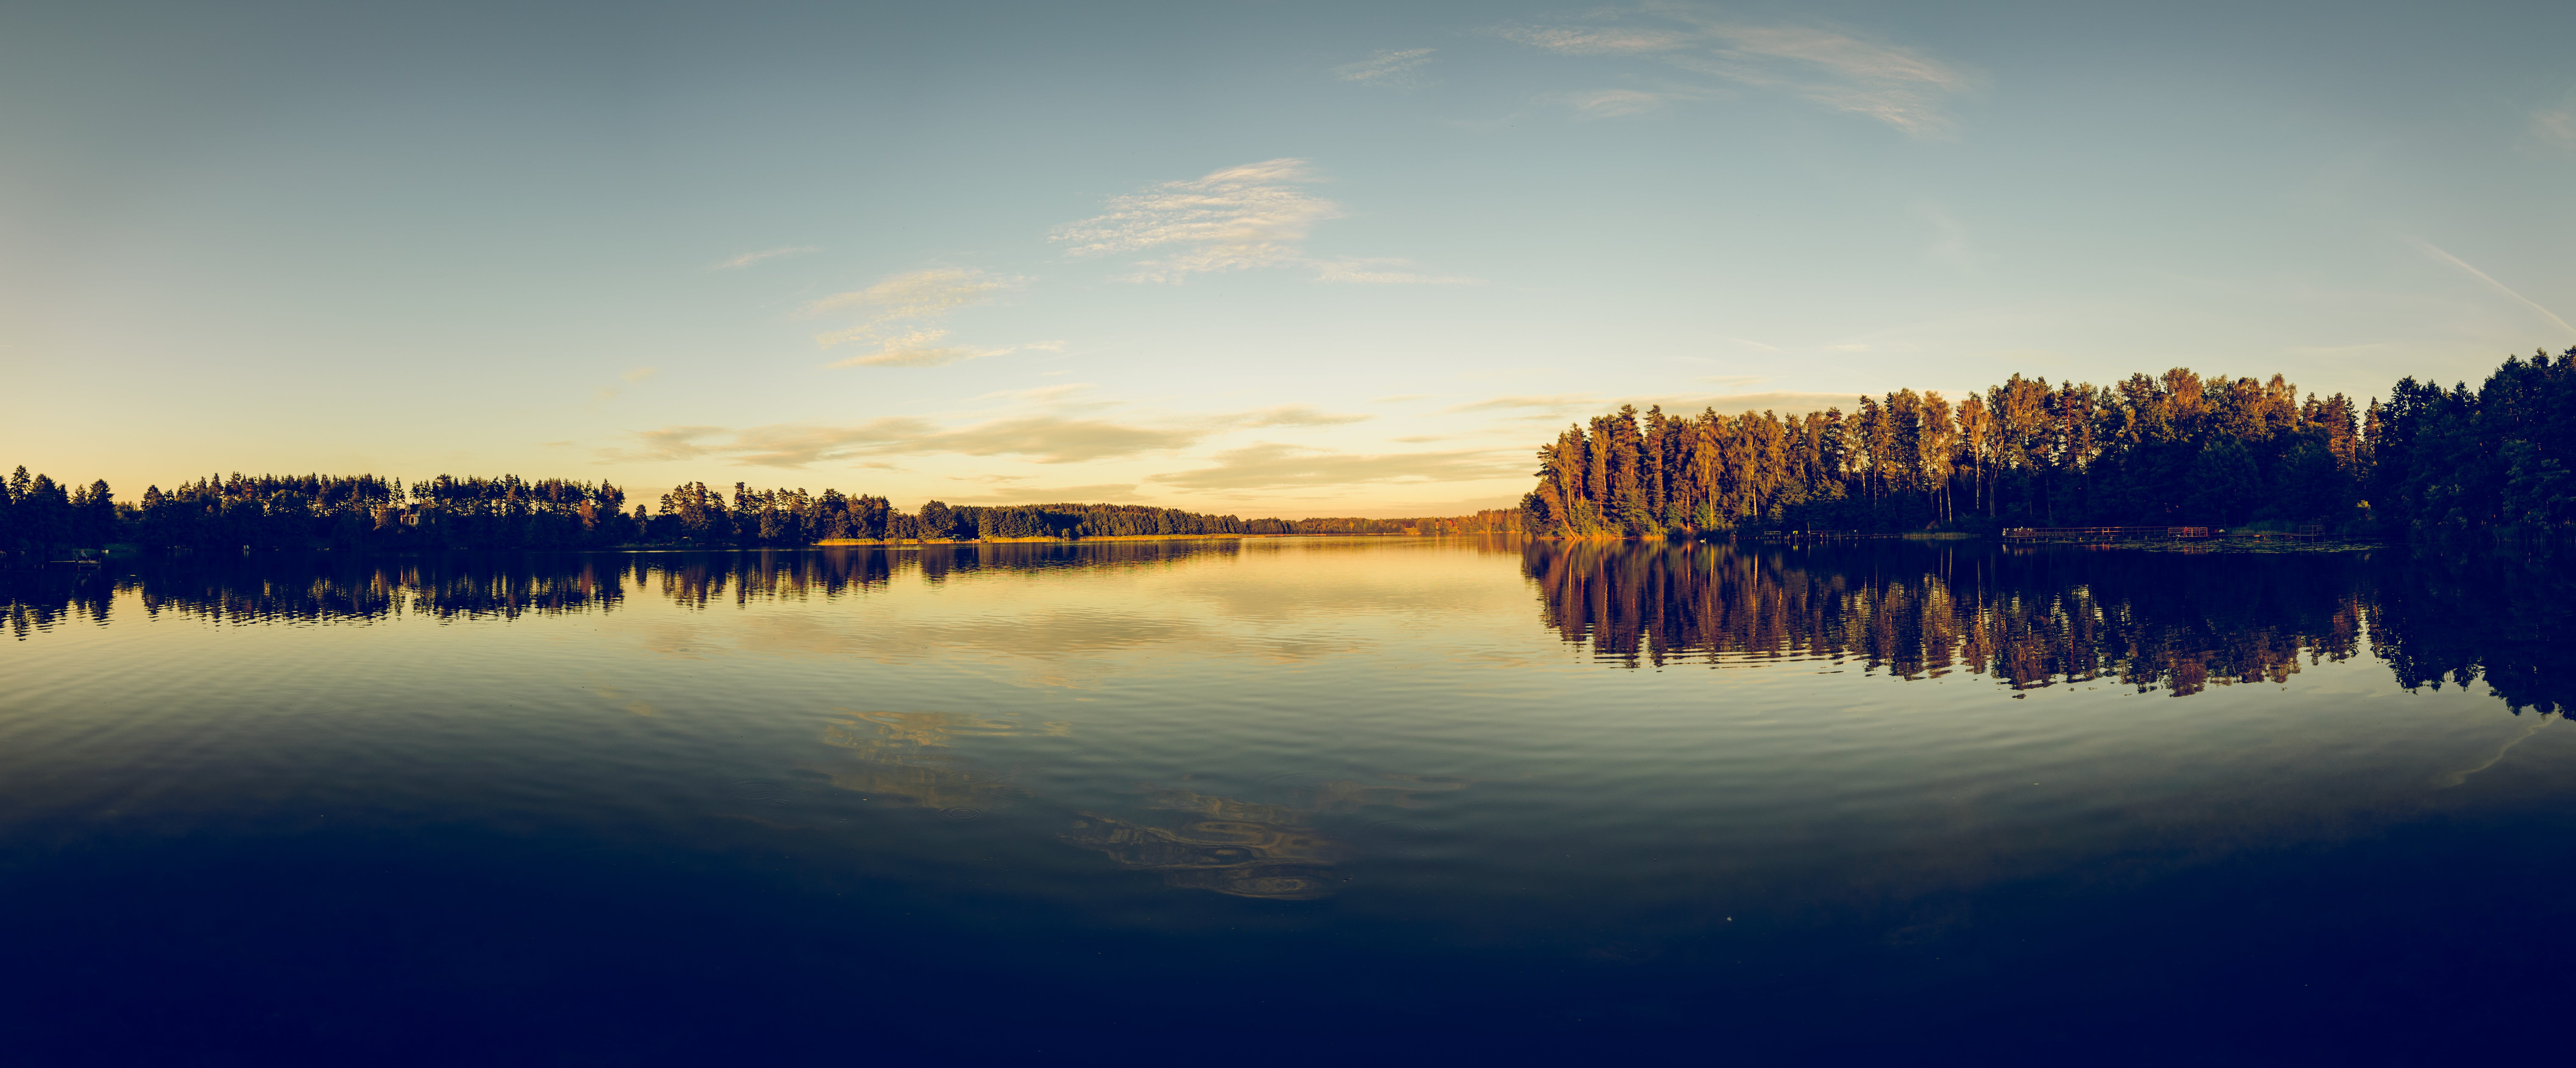 Silhouette of Trees Beside Body of Water Under Clear Blue Sky